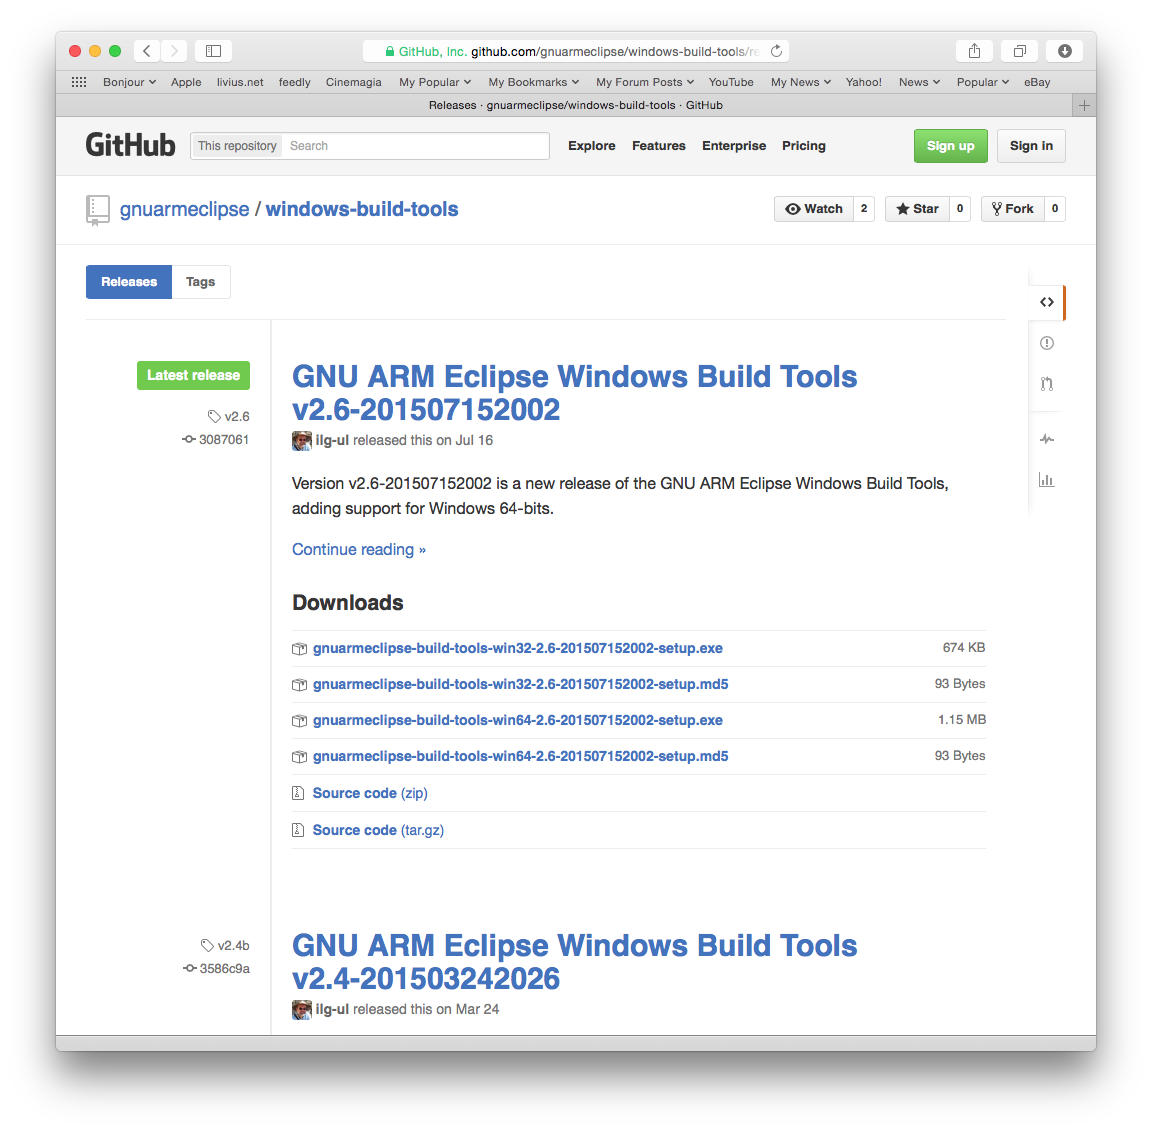 The Windows Build Tools Releases page